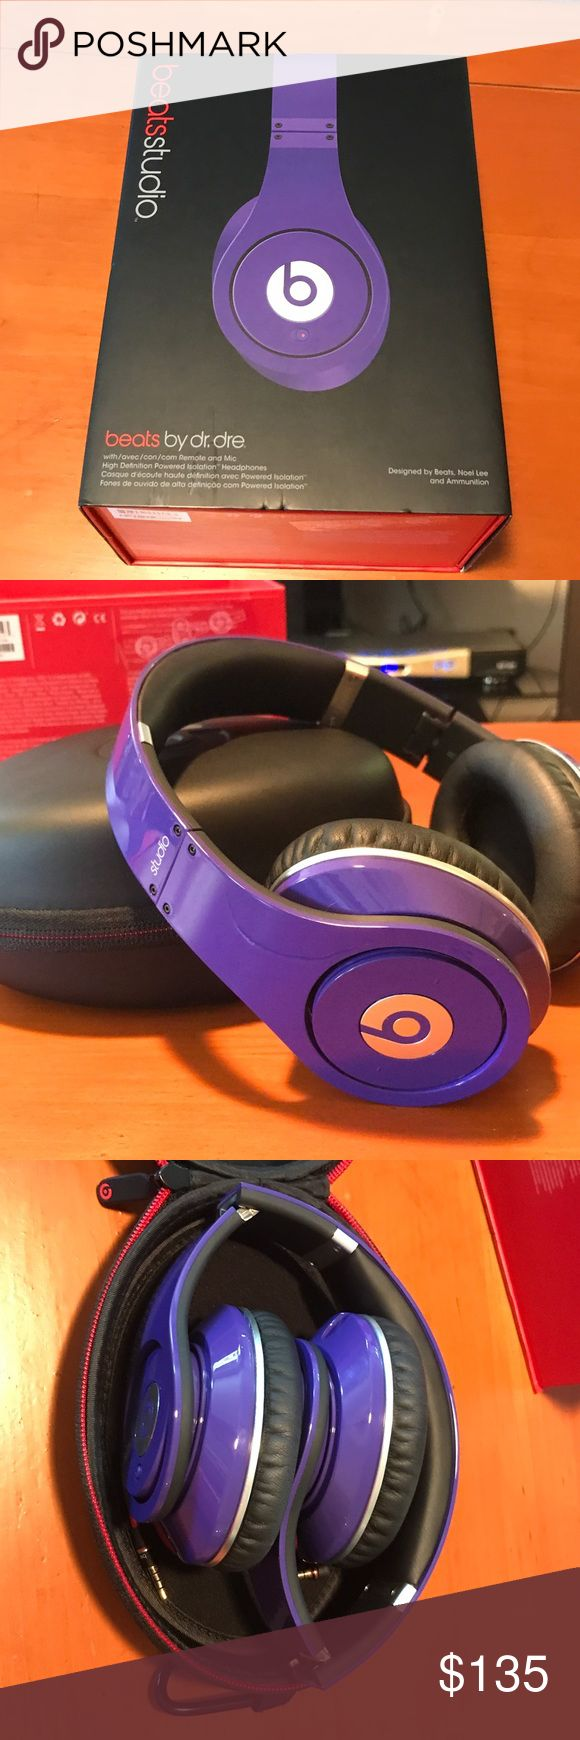 Purple beats studio headphones These limited edition Purple over the ear beats headphones are just like new! Adjustable head piece for comfort while wearing the headphones and sound quality is unbelievable! Comes in original box with: beats booklets, headphone cord, extra AUZ piece, headphones case, and headphone cleaning cloth! Only used a handful of times, like brand new! Will include brand new batteries for purchase!! beats by dr. dre Other